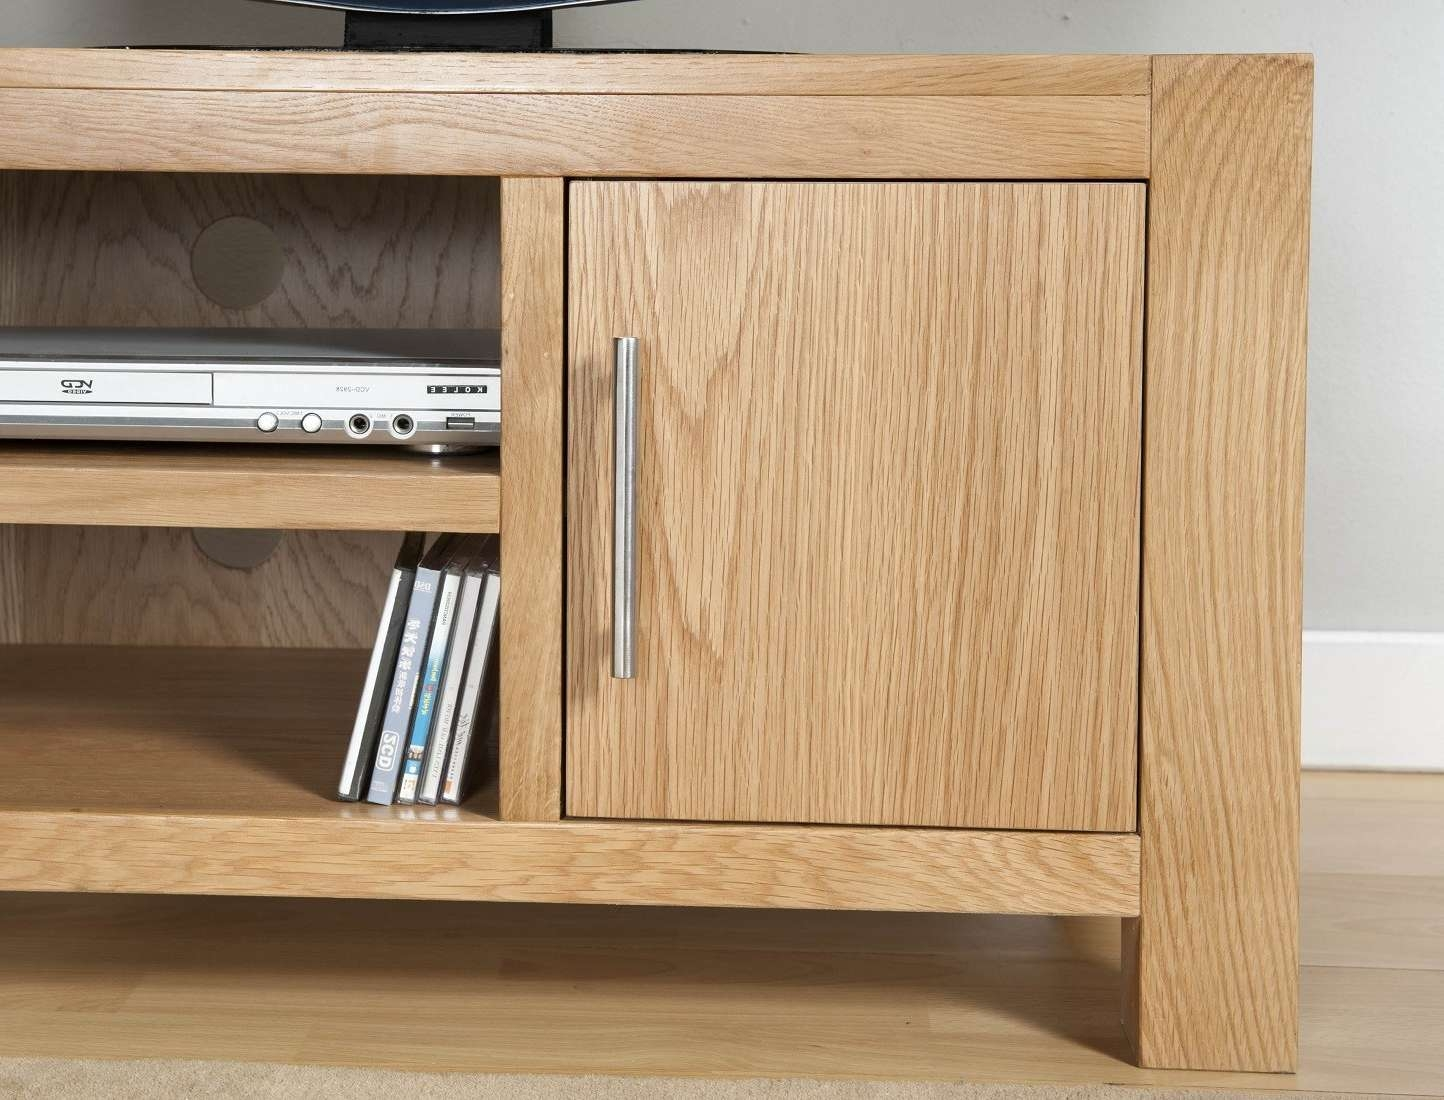 Aylesbury Contemporary Light Oak Small Tv Unit | Oak Furniture Uk Pertaining To Light Oak Tv Cabinets (View 4 of 20)